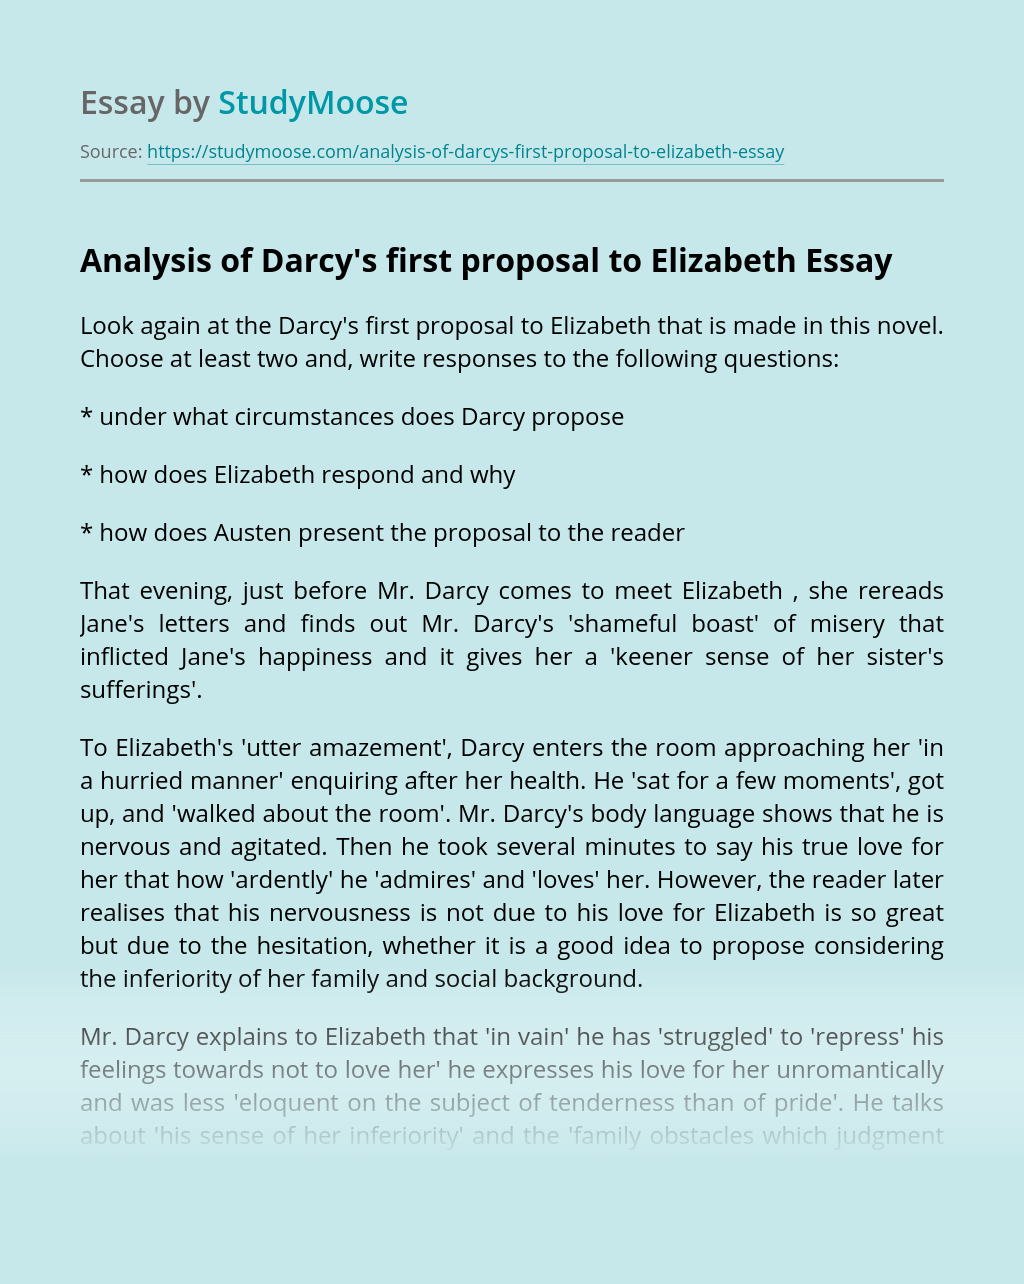 Analysis of Darcy's first proposal to Elizabeth